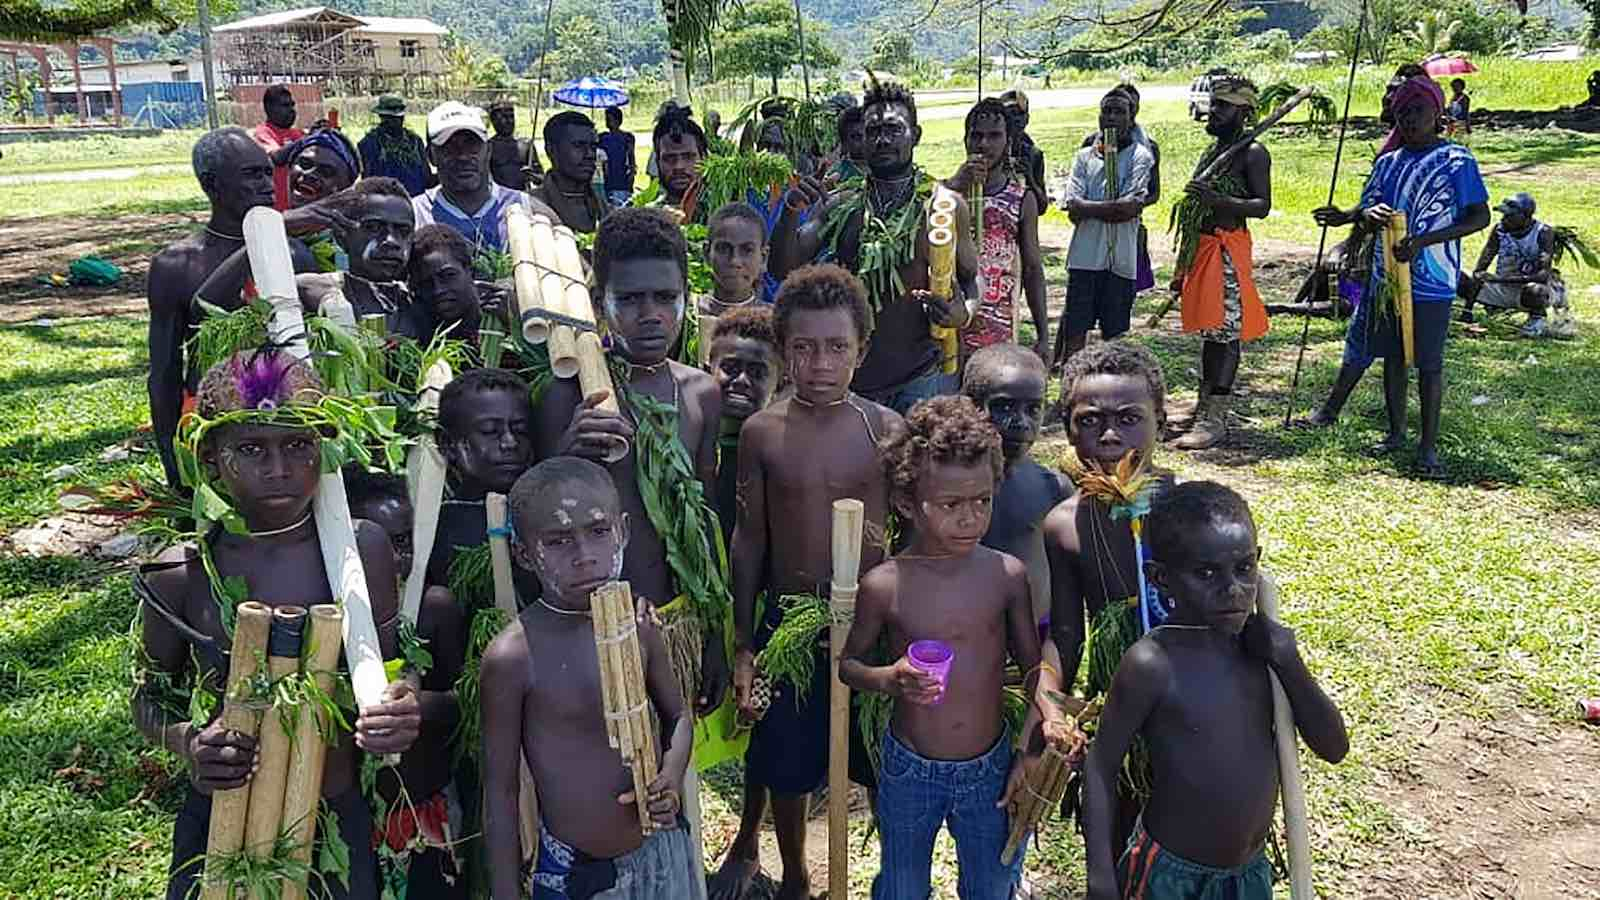 Children attend a reconciliation ceremony ahead of the independence referendum, Arawa, Bougainville, 6 November (Photo: Llane Munau/AFP via Getty Images)